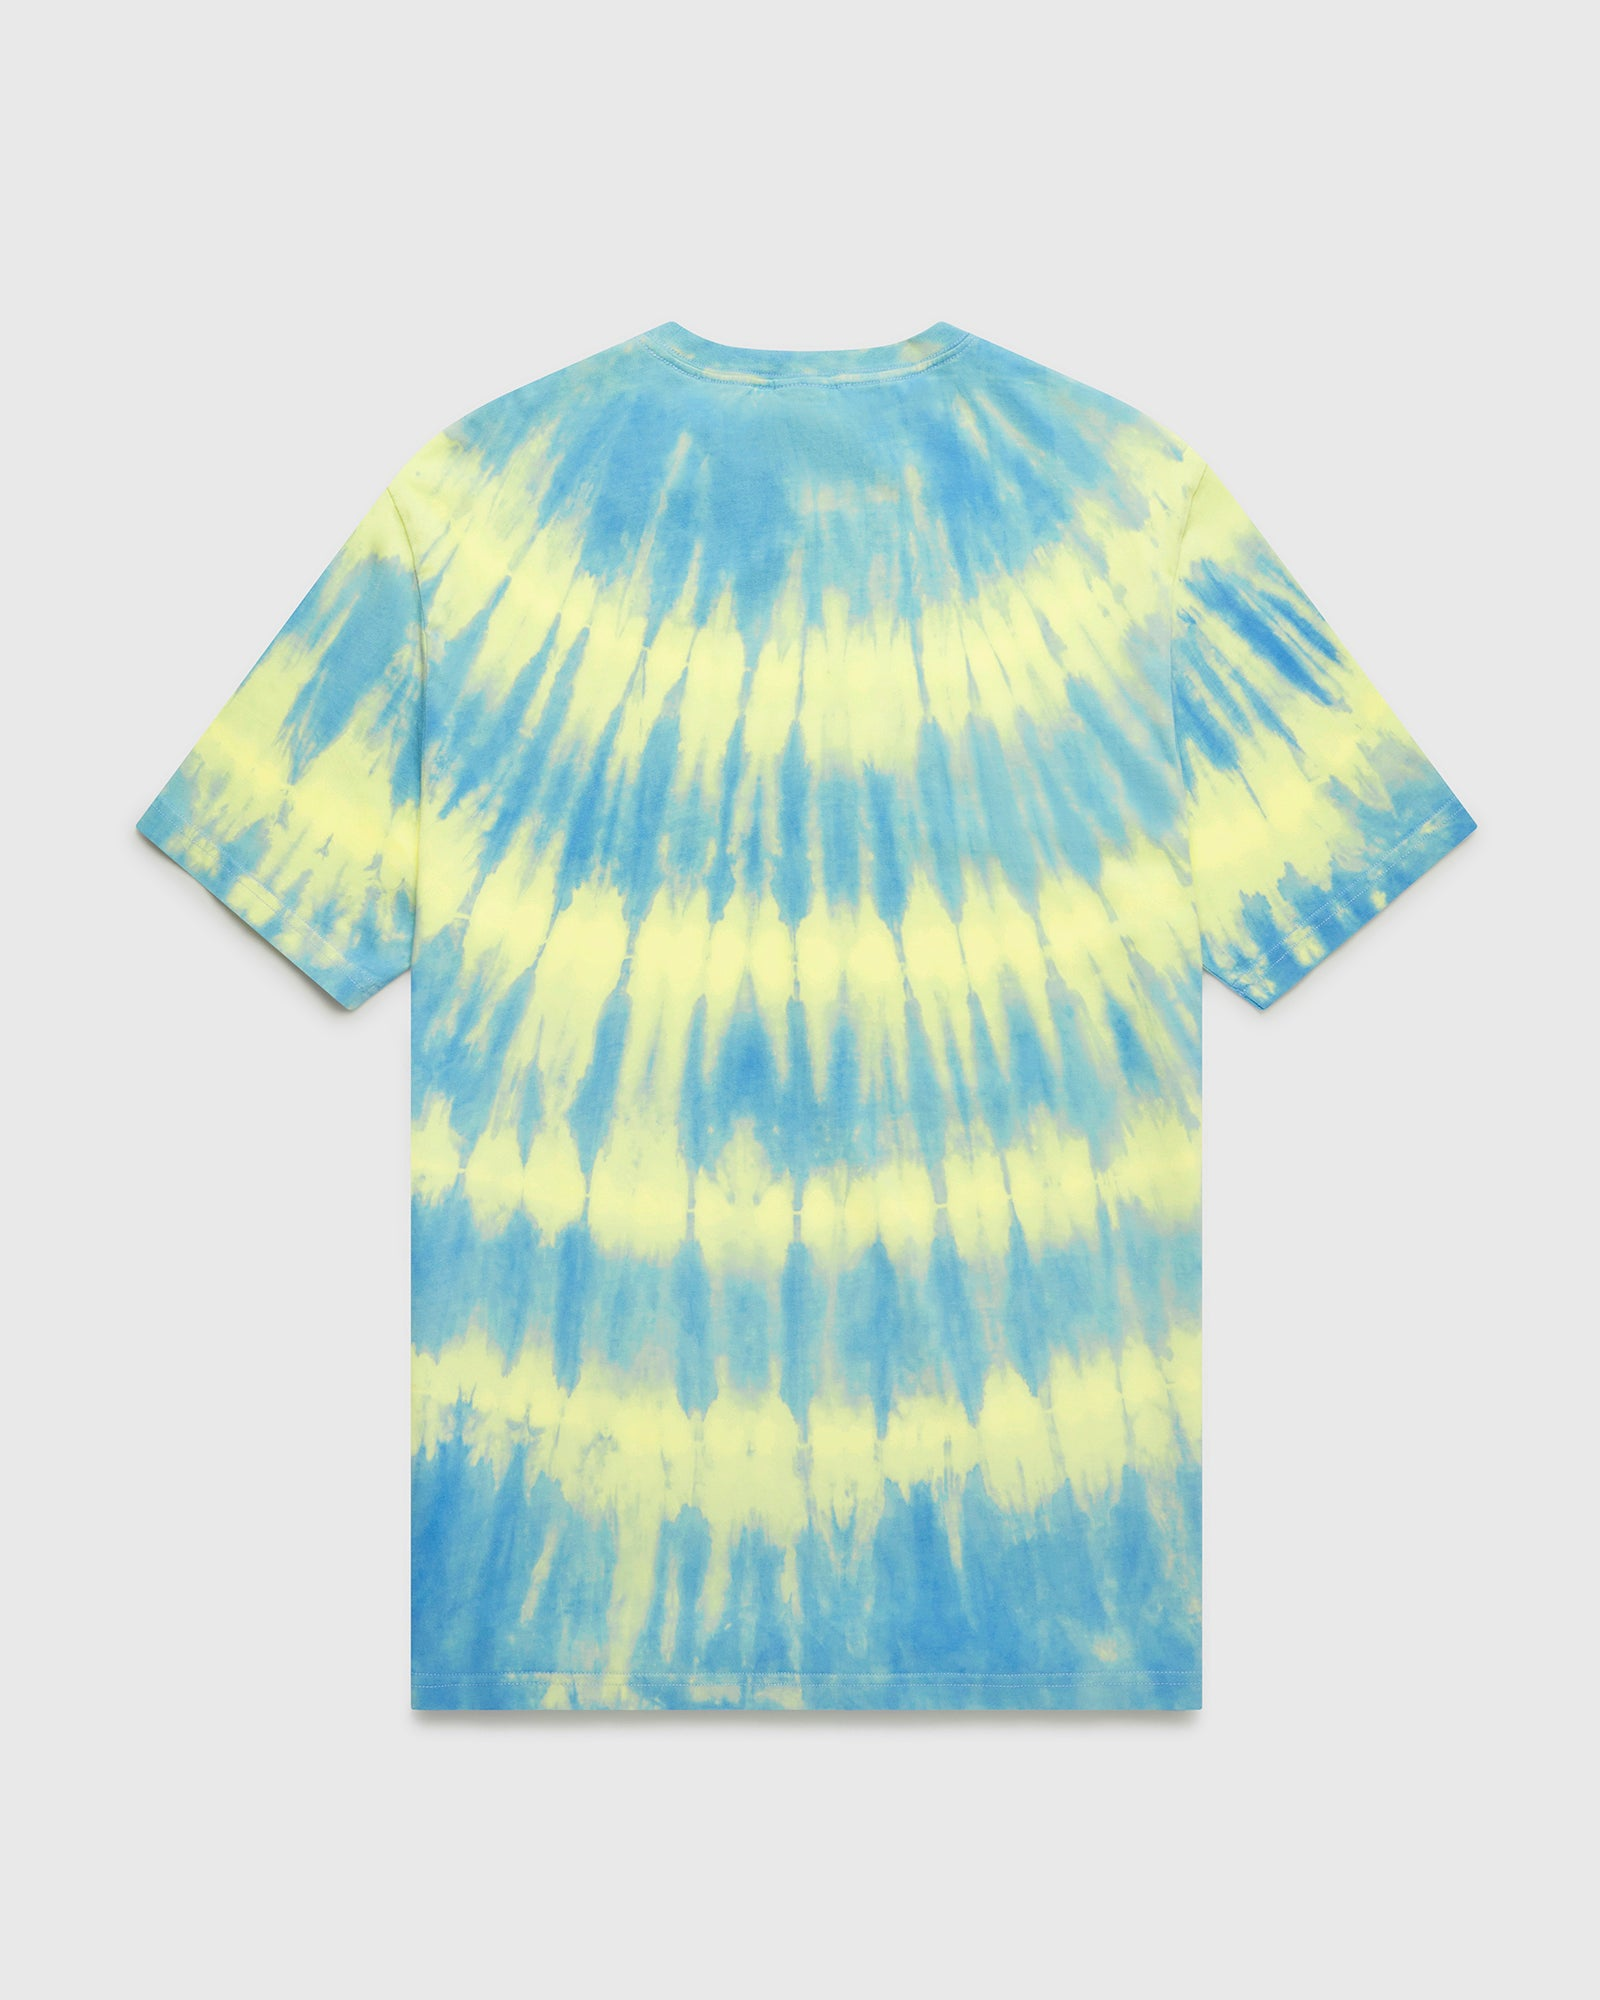 OVO MARBLE TIE DYE T-SHIRT - BLUE/YELLOW IMAGE #2